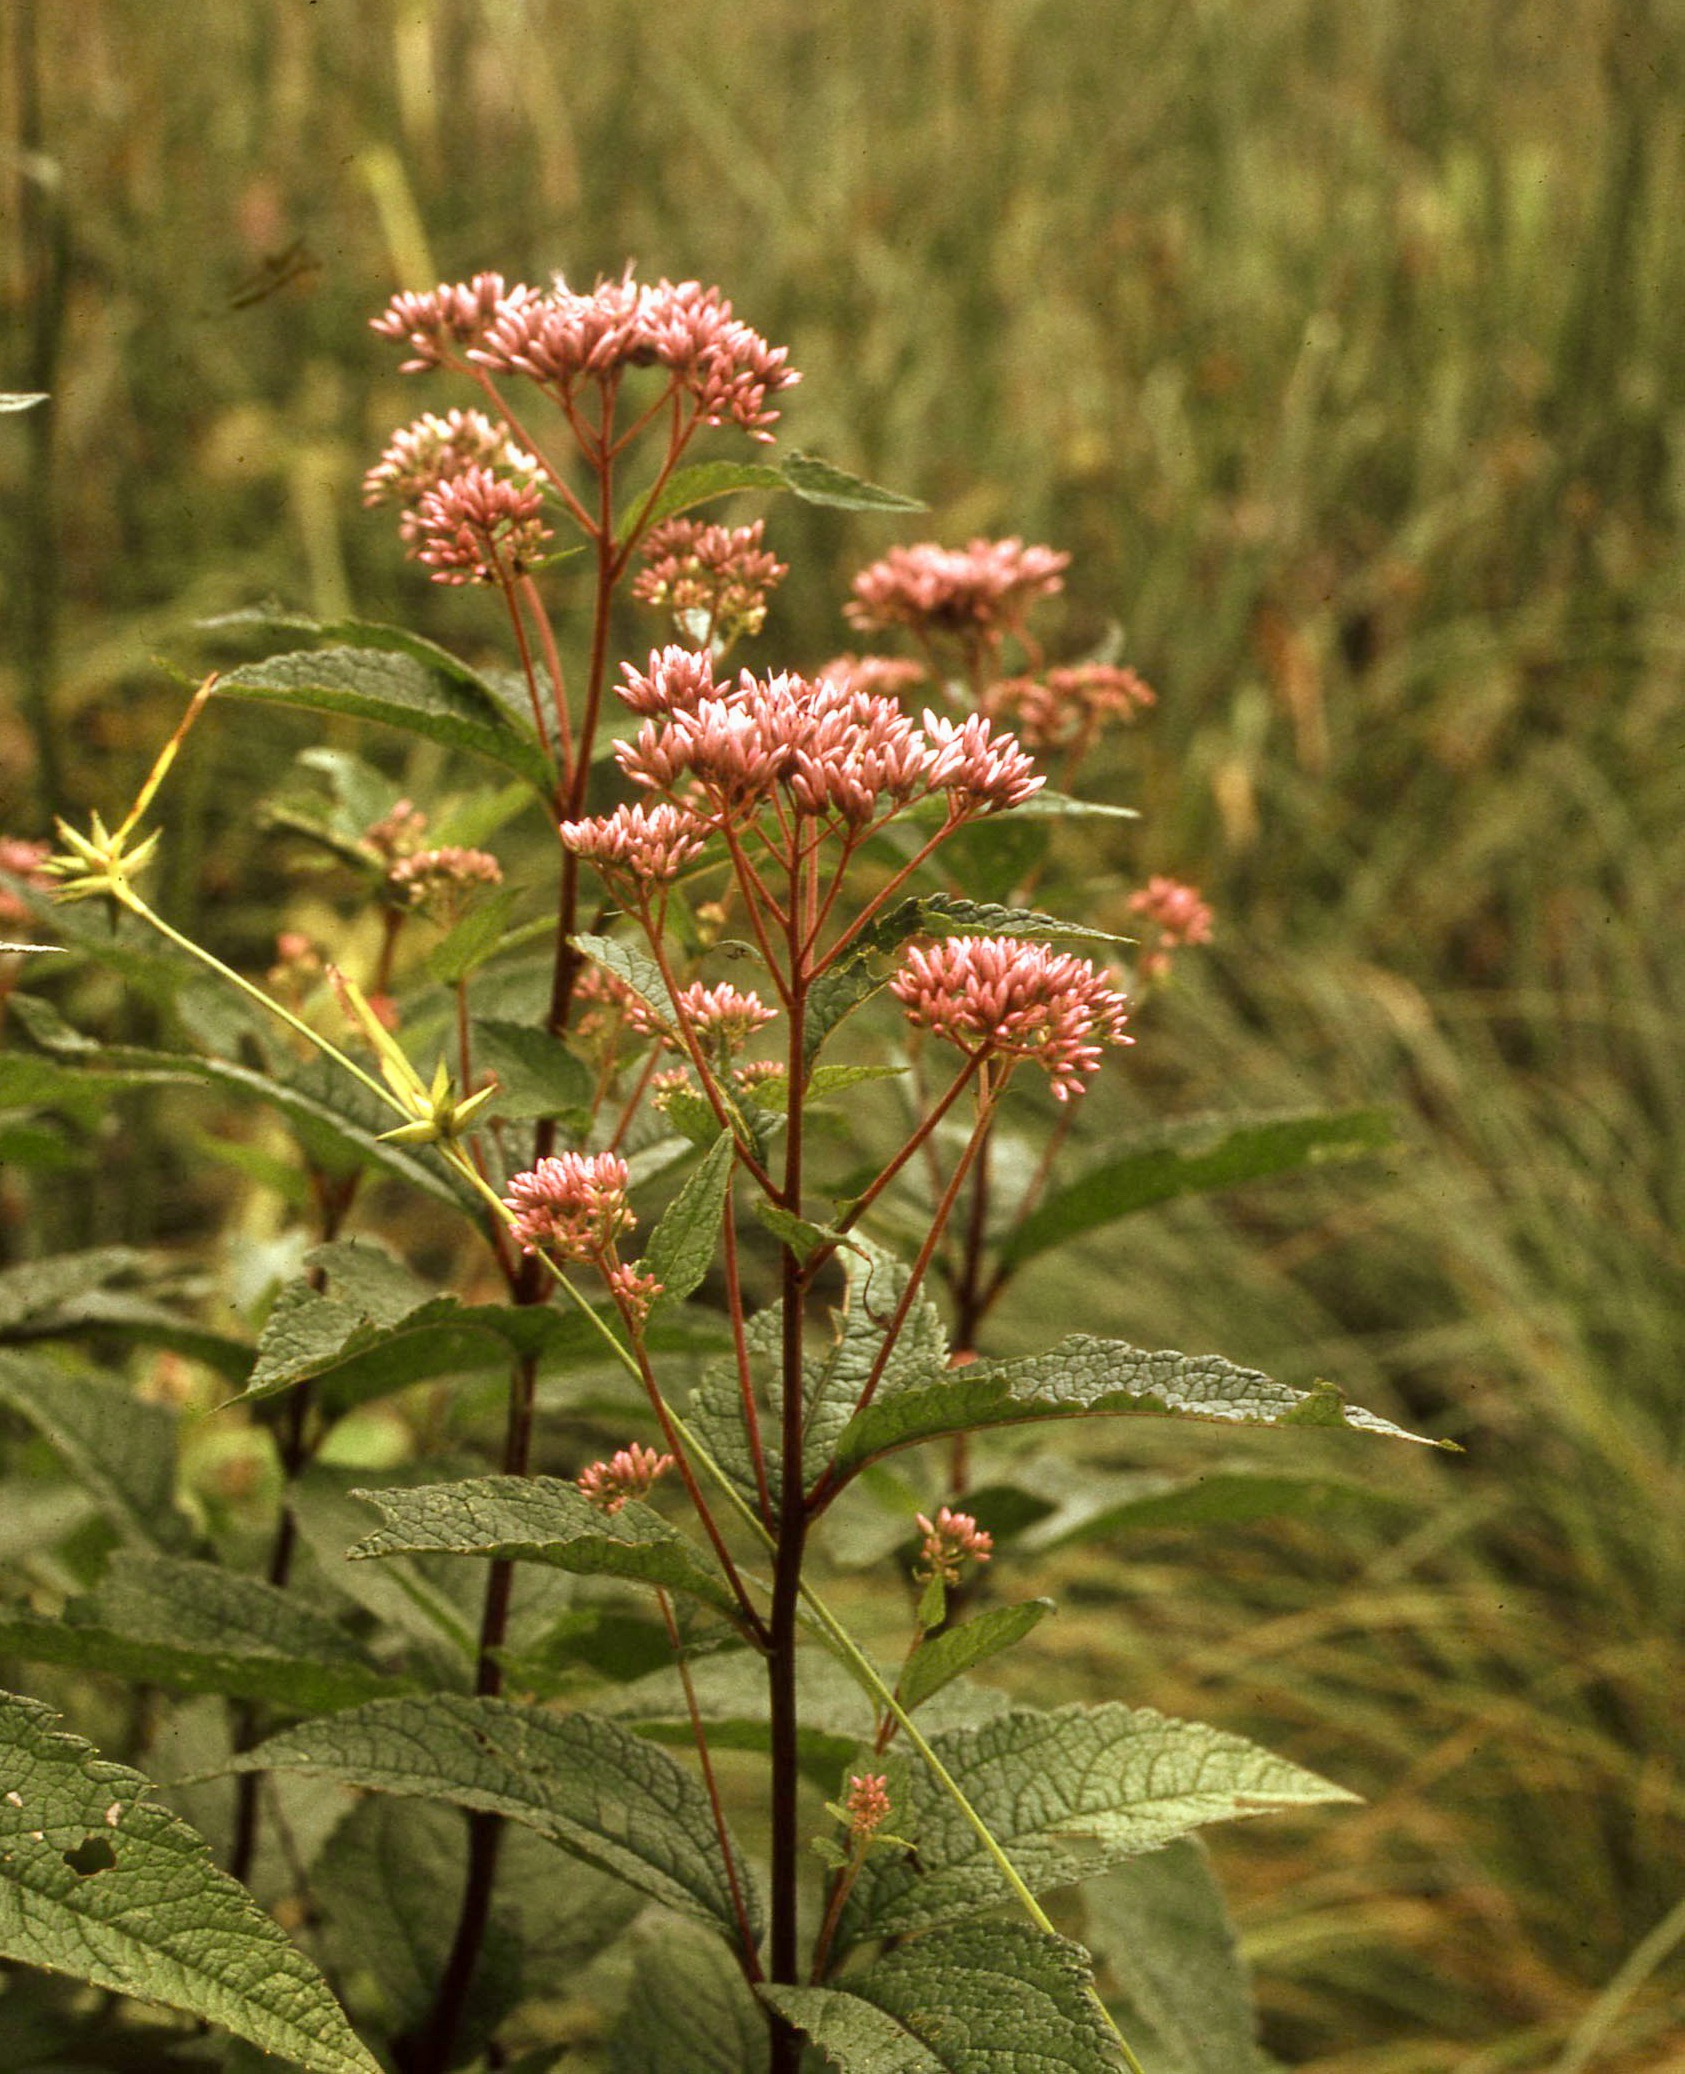 The Scientific Name is Eutrochium dubium [= Eupatorium dubium]. You will likely hear them called Three-nerved Joe-Pye-weed, Coastal Plain Joe-Pye-weed, Joe-Pye Thoroughwort. This picture shows the Pink flower clusters with leaves in whorls of 3 or 4 of Eutrochium dubium [= Eupatorium dubium]